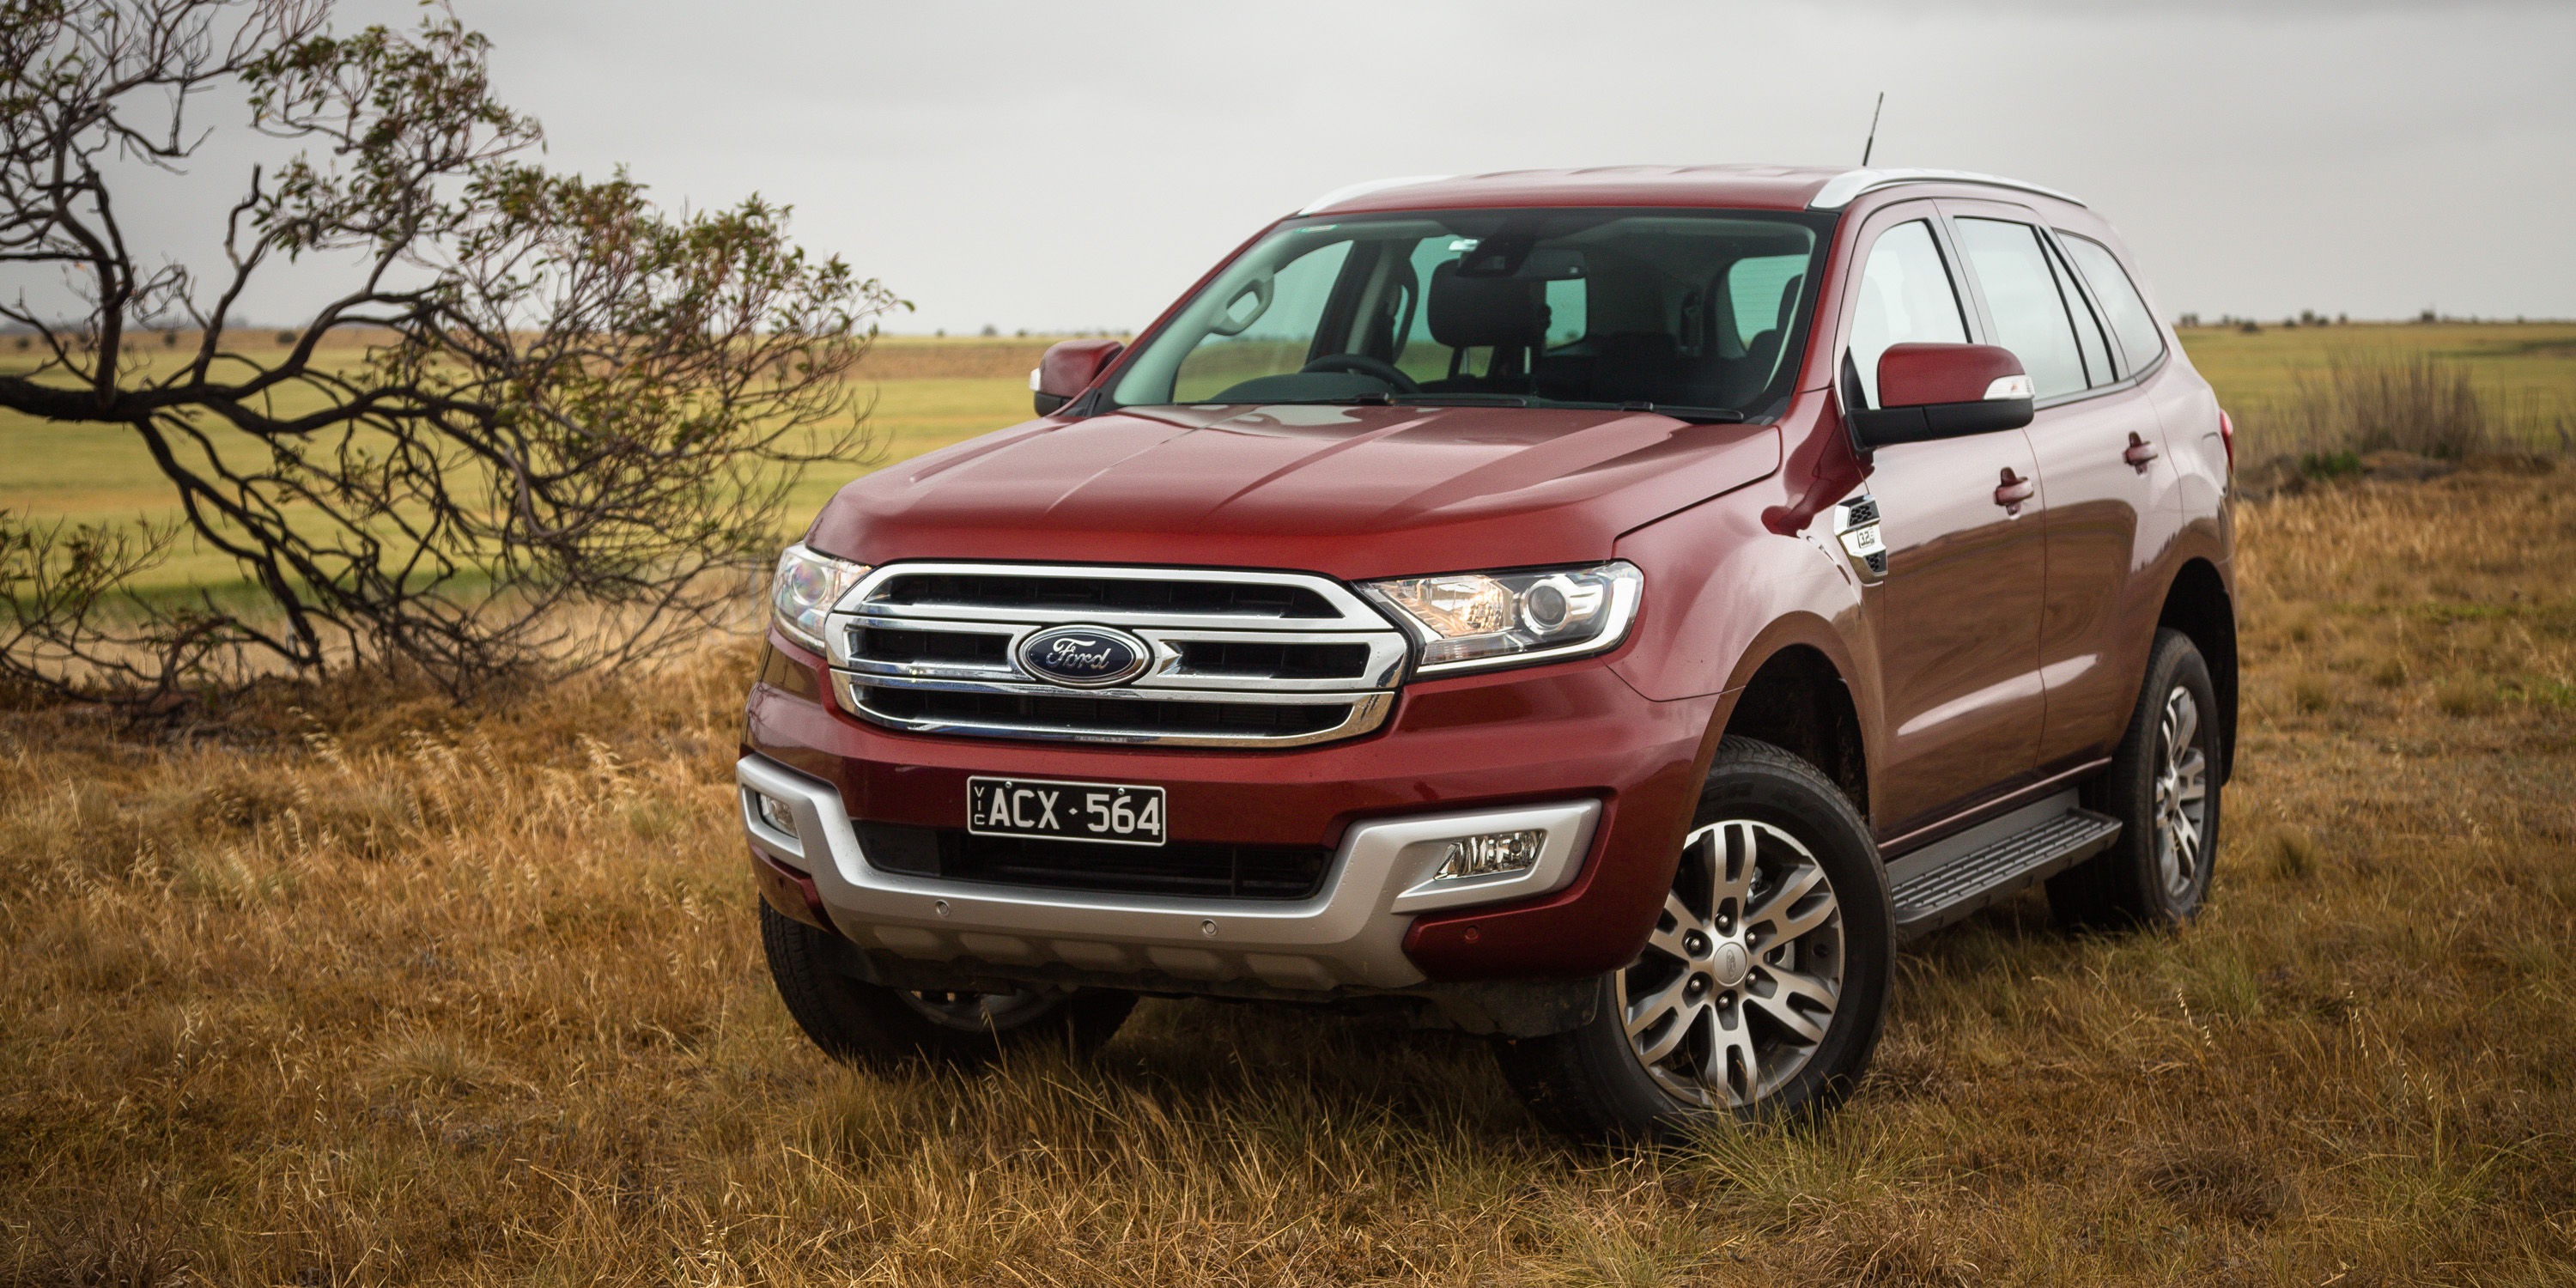 New Trucks Coming Out In 2015 2017 2018 Best Cars Reviews Ford Everest Trend v Toyota Fortuner Crusade comparison - Photos (1 of ...